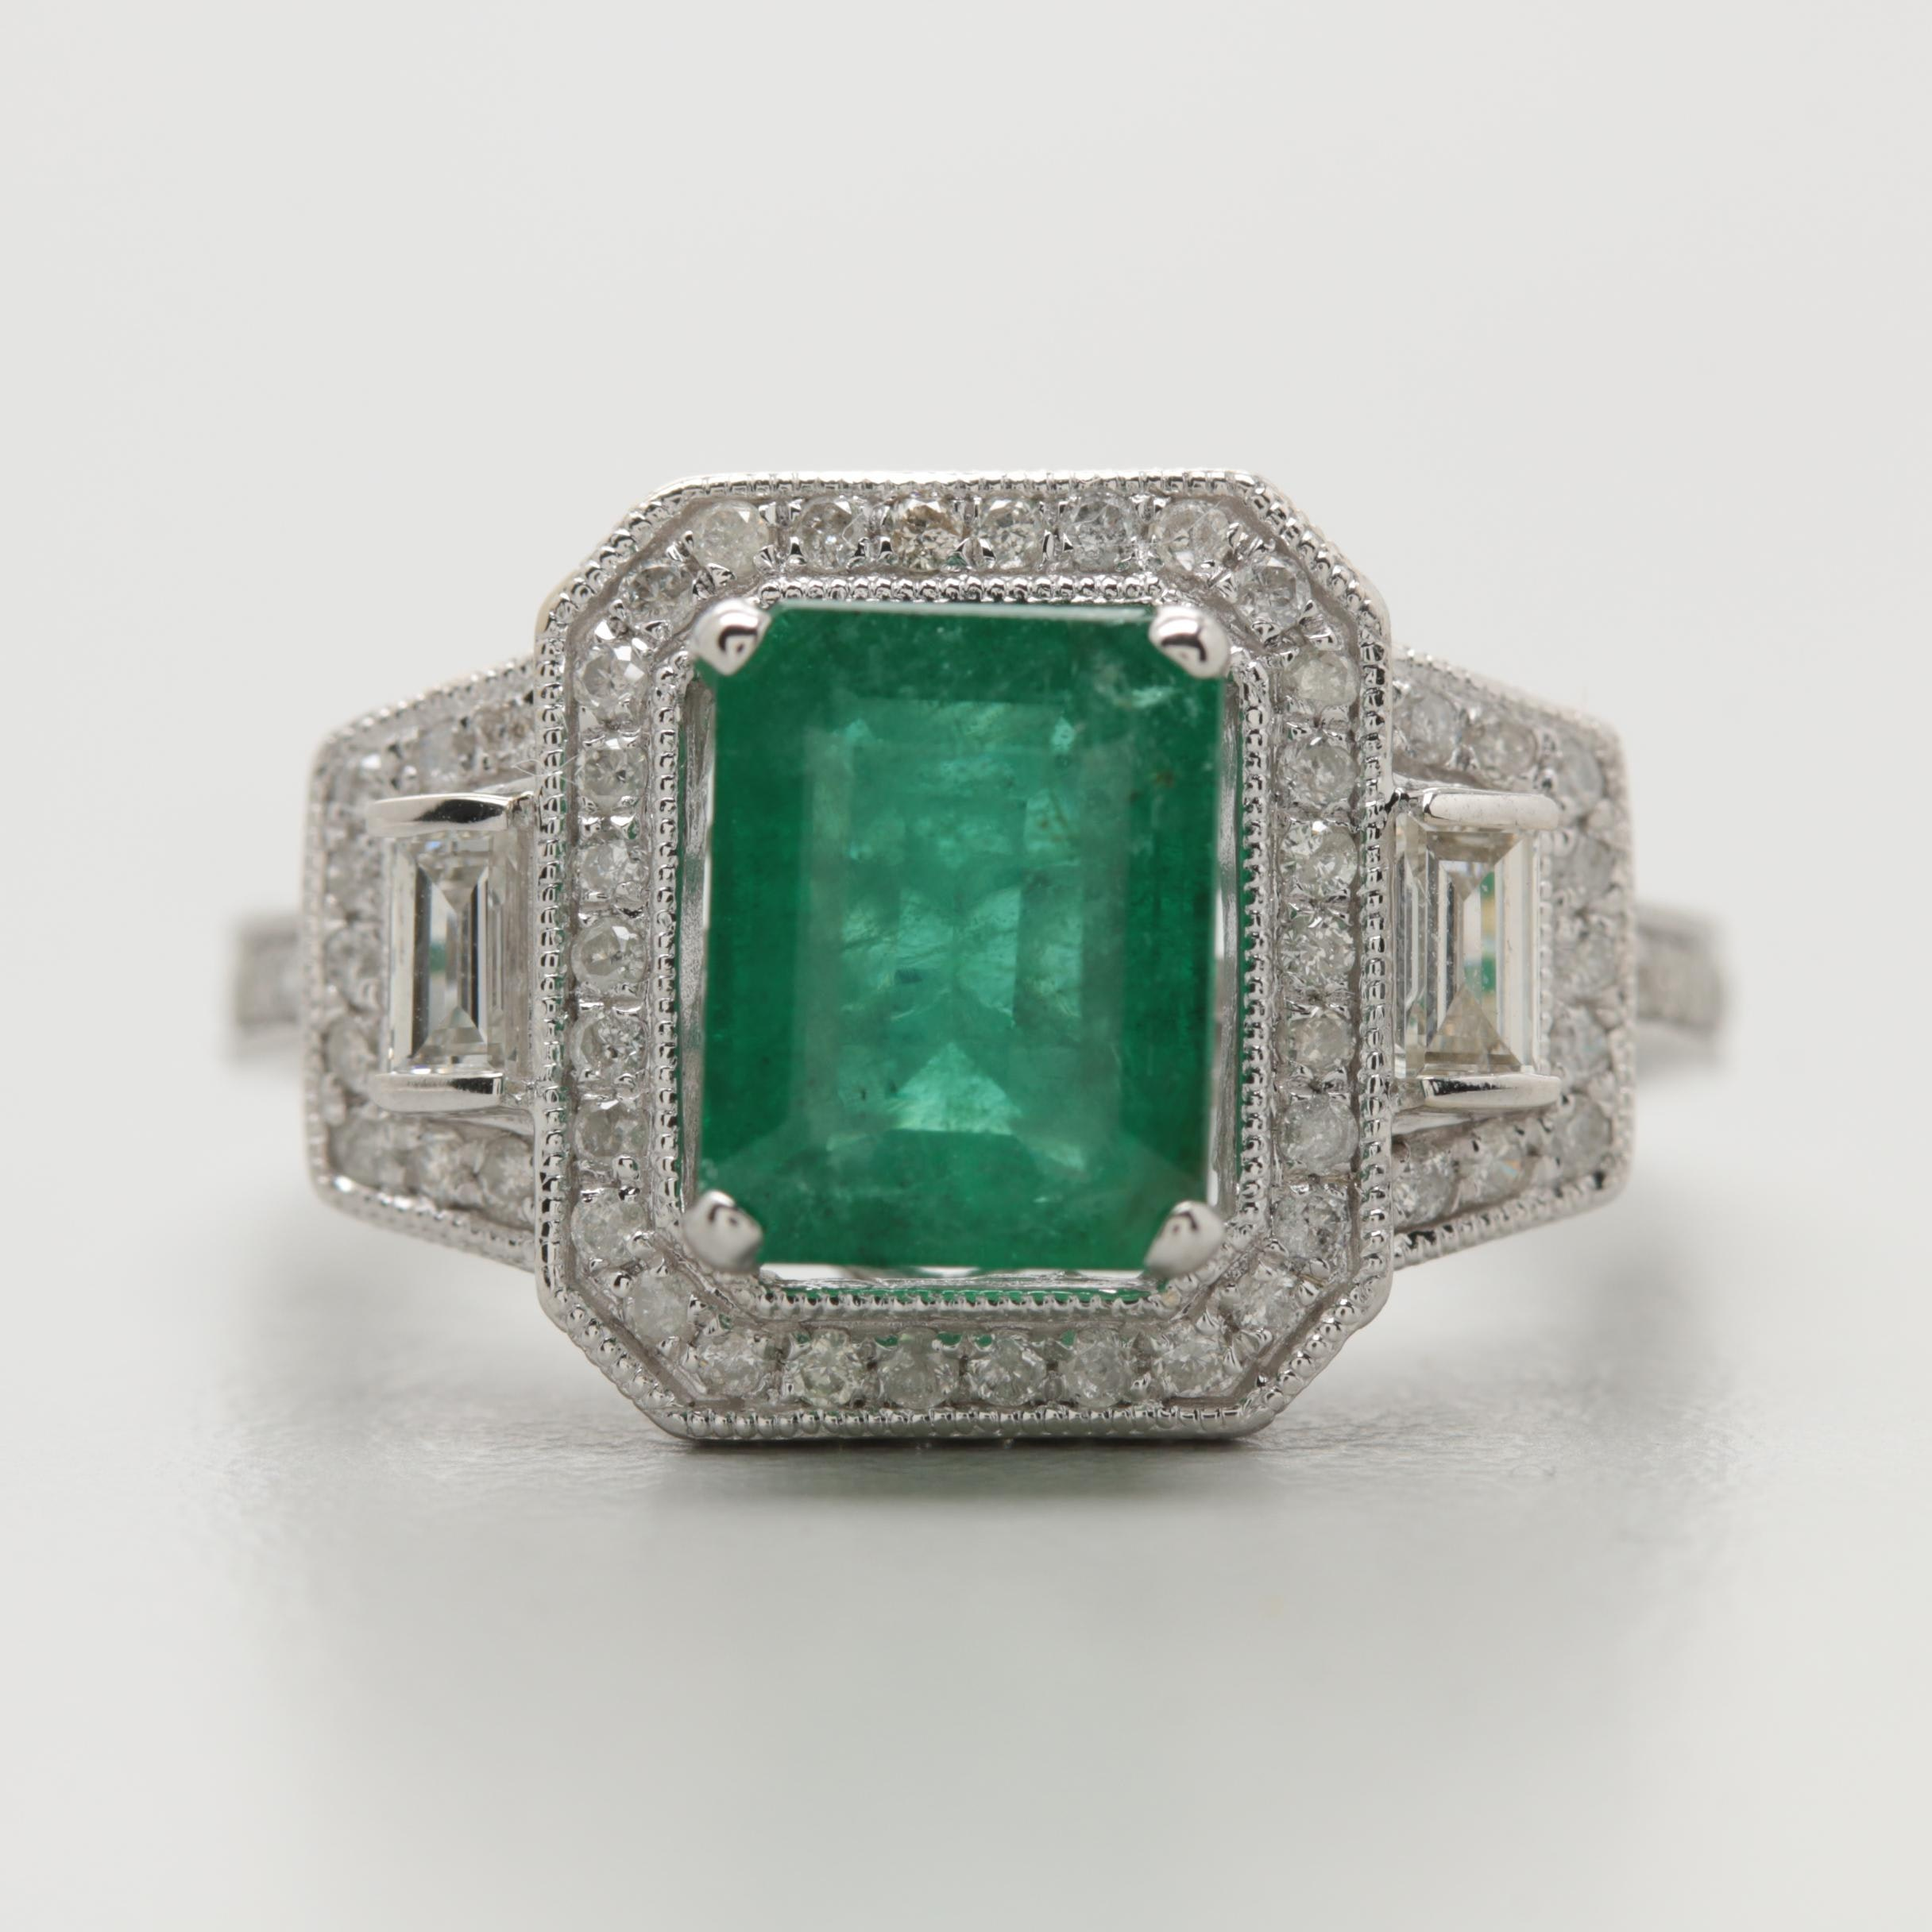 14K White Gold 1.75 CT Emerald and Diamond Ring